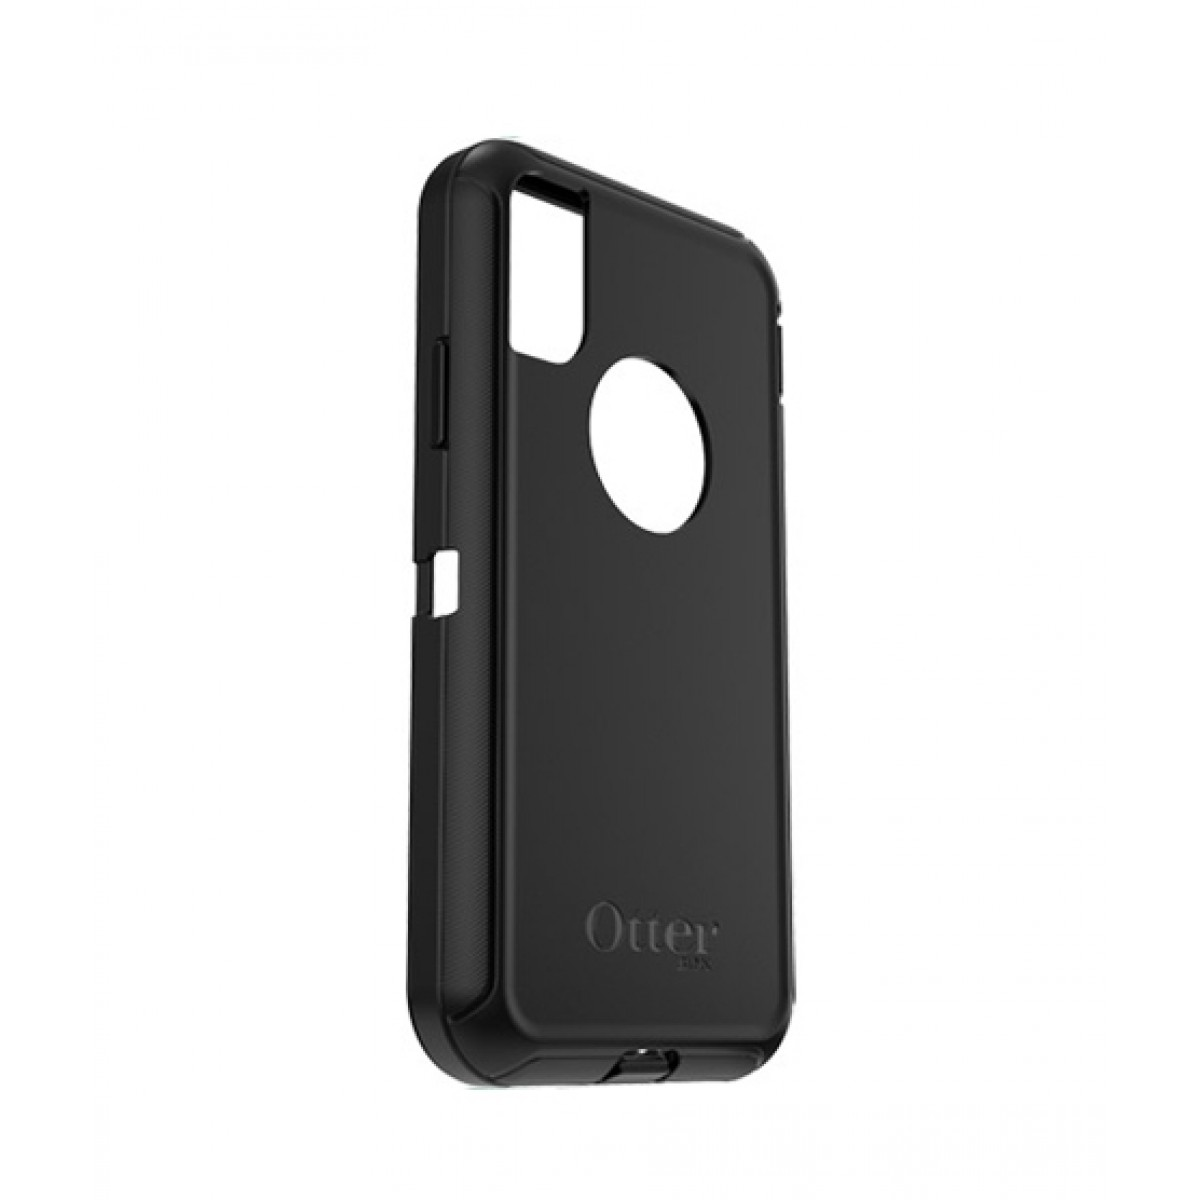 size 40 2bb3e 228cd OtterBox Defender Series Slipcover Black Case For iPhone X/XS